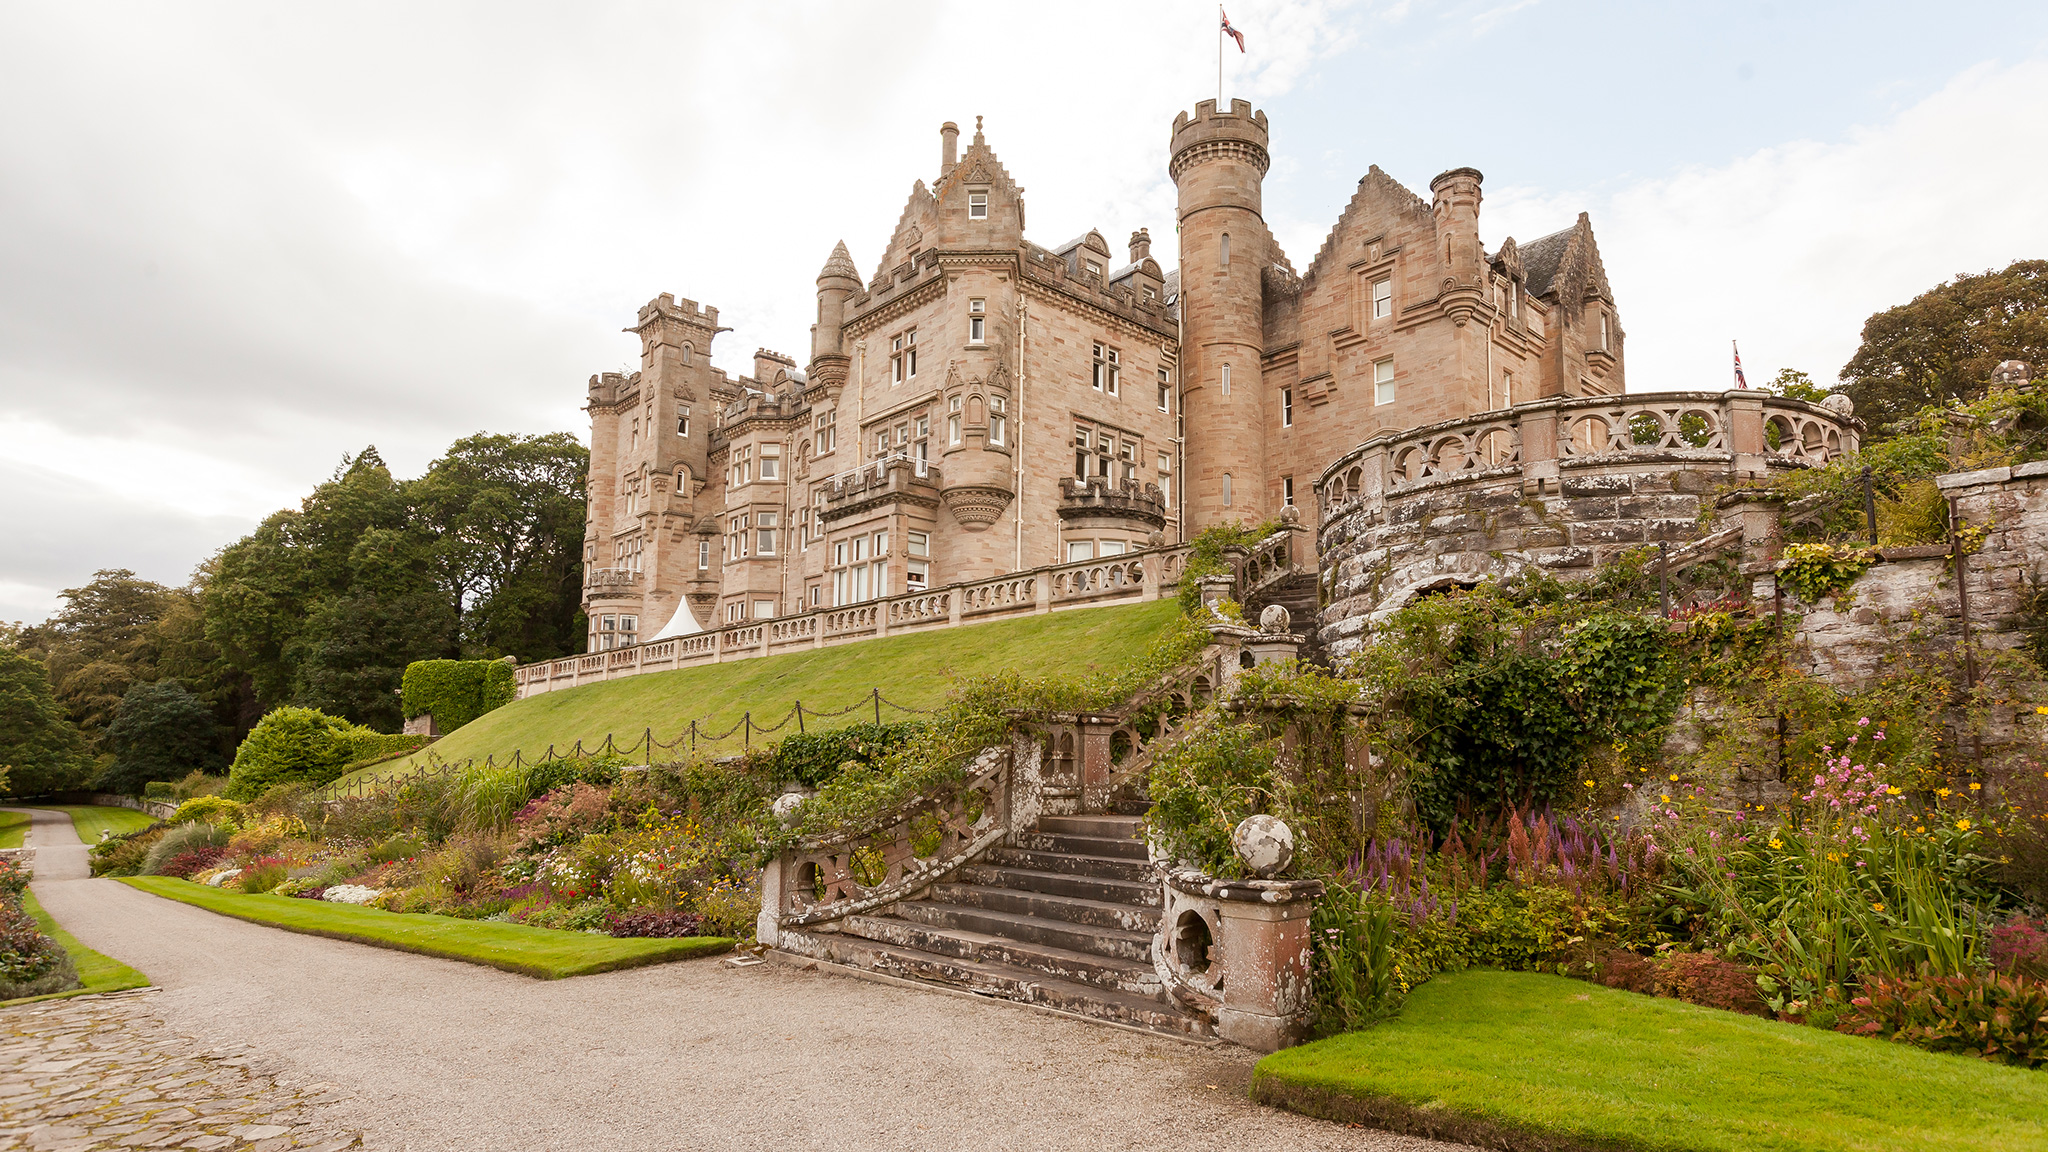 The story of Skibo, Andrew Carnegie's Scottish estate | Financial Times